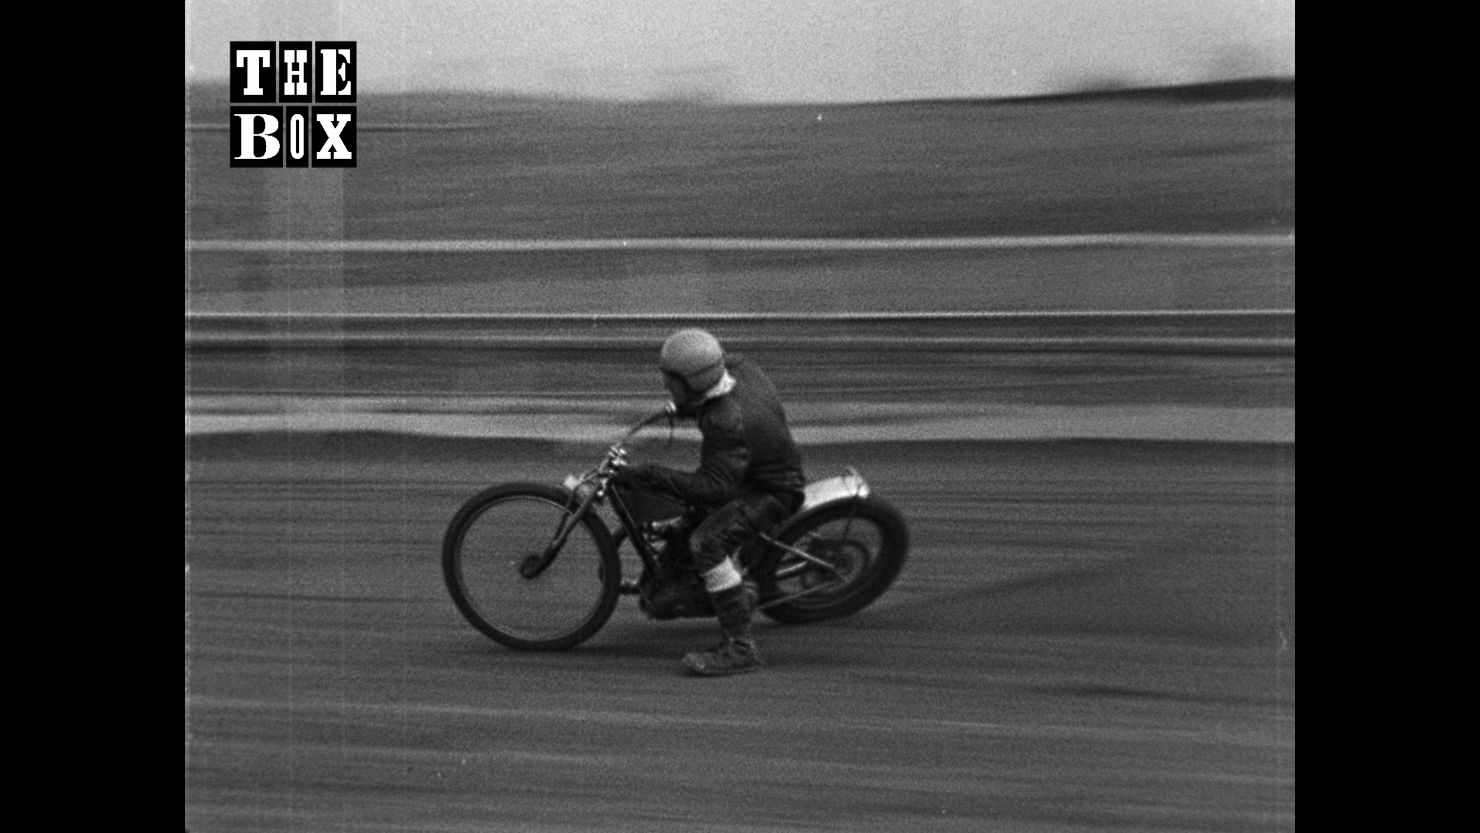 Archive image of a man on a motorbike